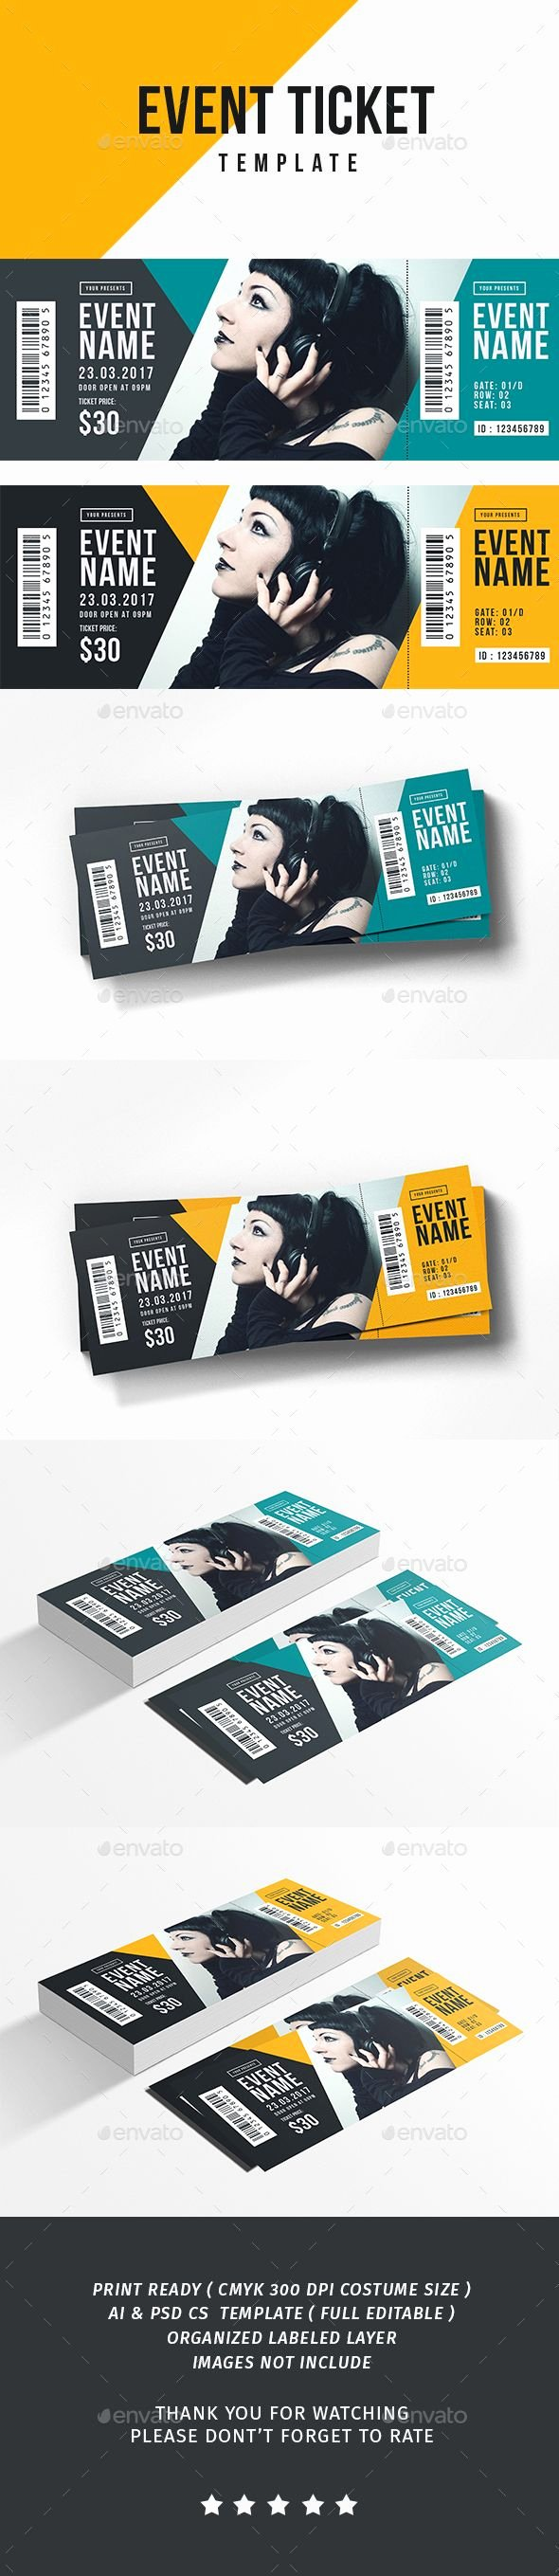 Event Ticket Template Photoshop New Pin by Bashooka Web & Graphic Design On Ticket Template